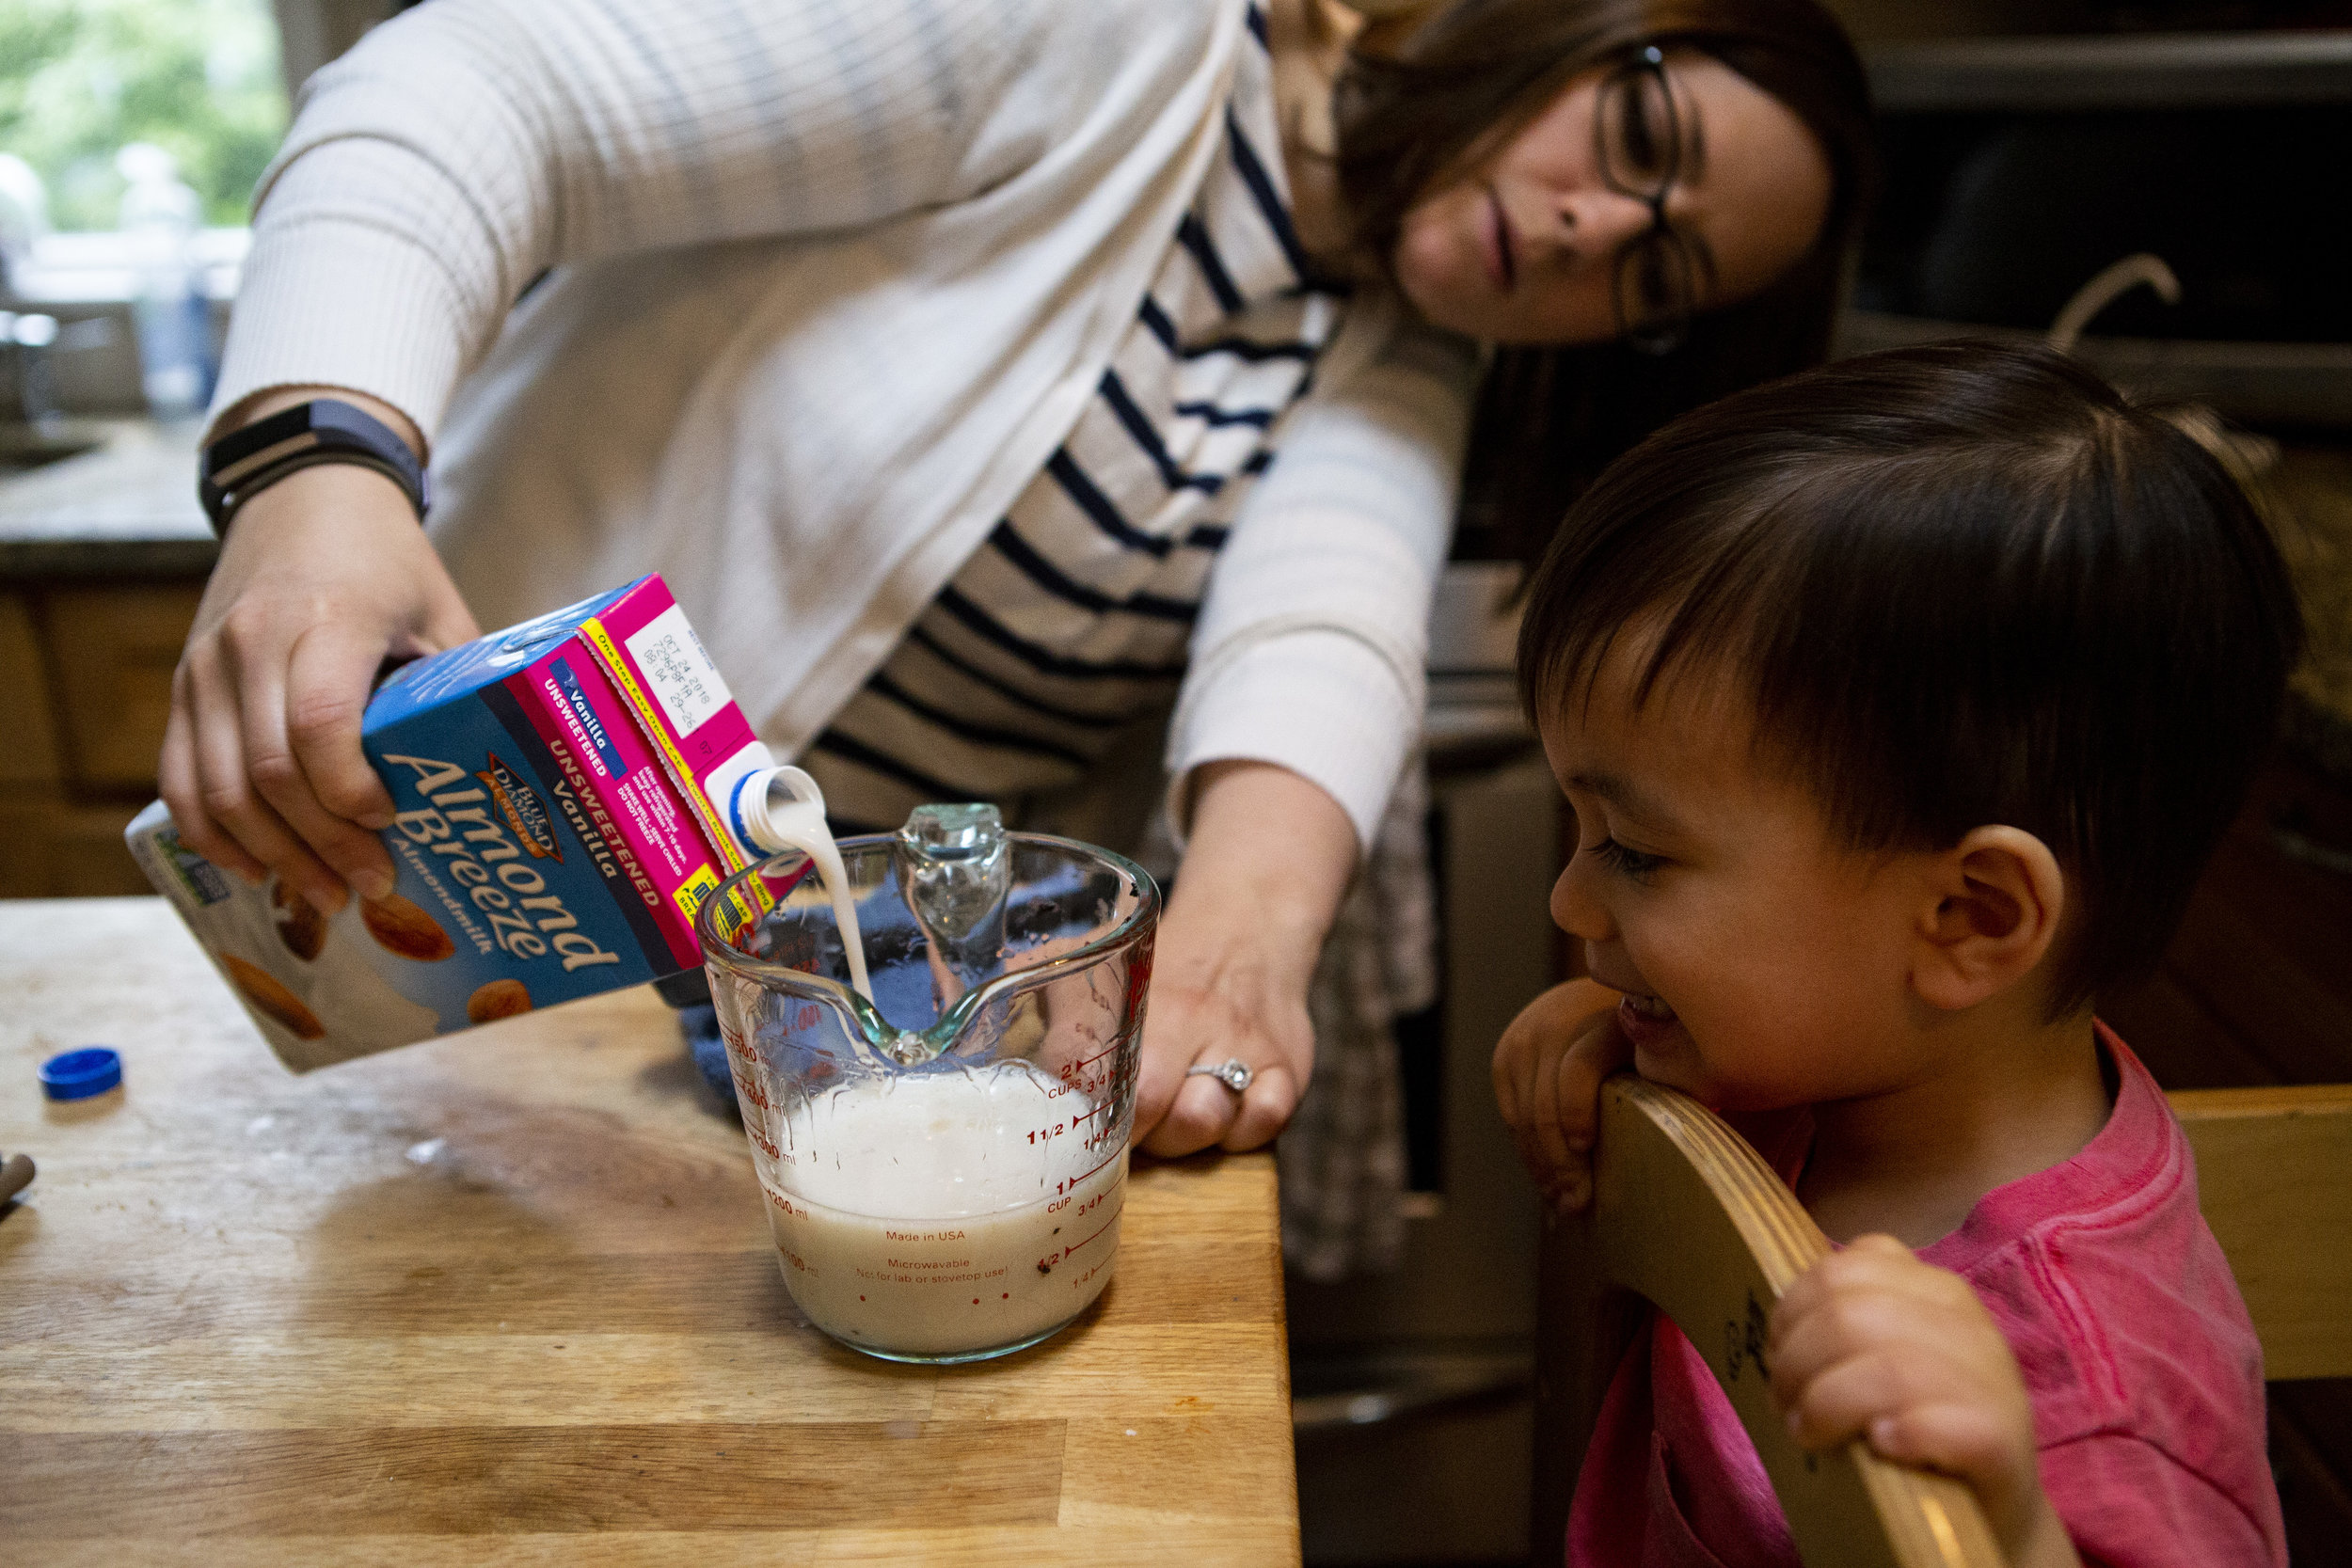 Boston mom measures almond milk with her son